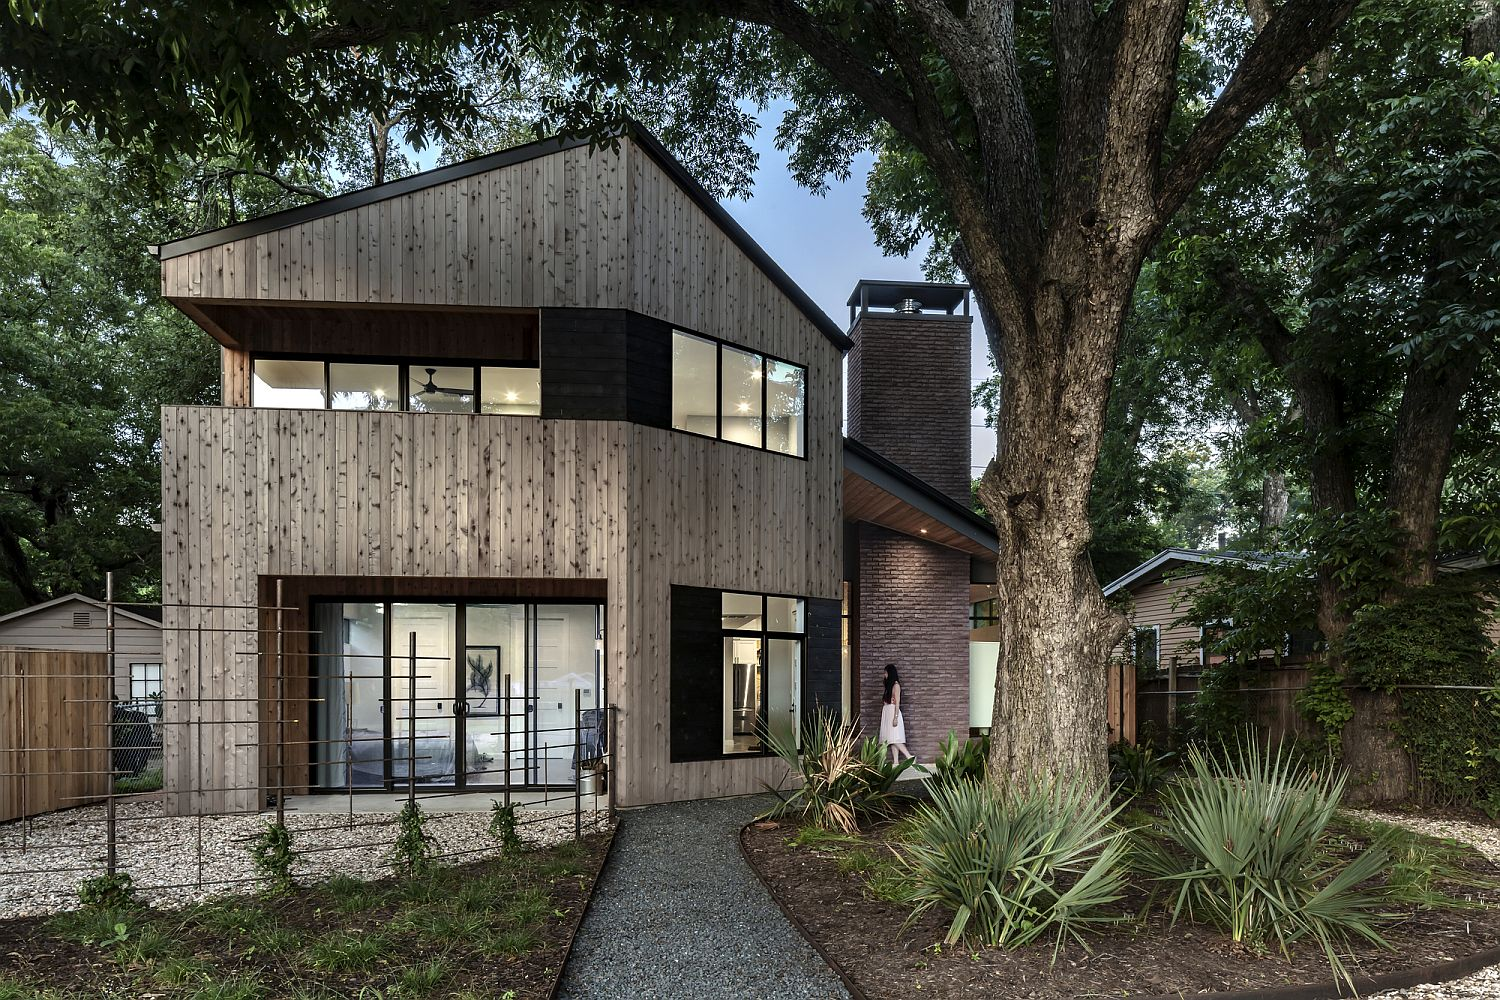 Beautiful cedar elm exterior of the Hewn House feels warm and inviting